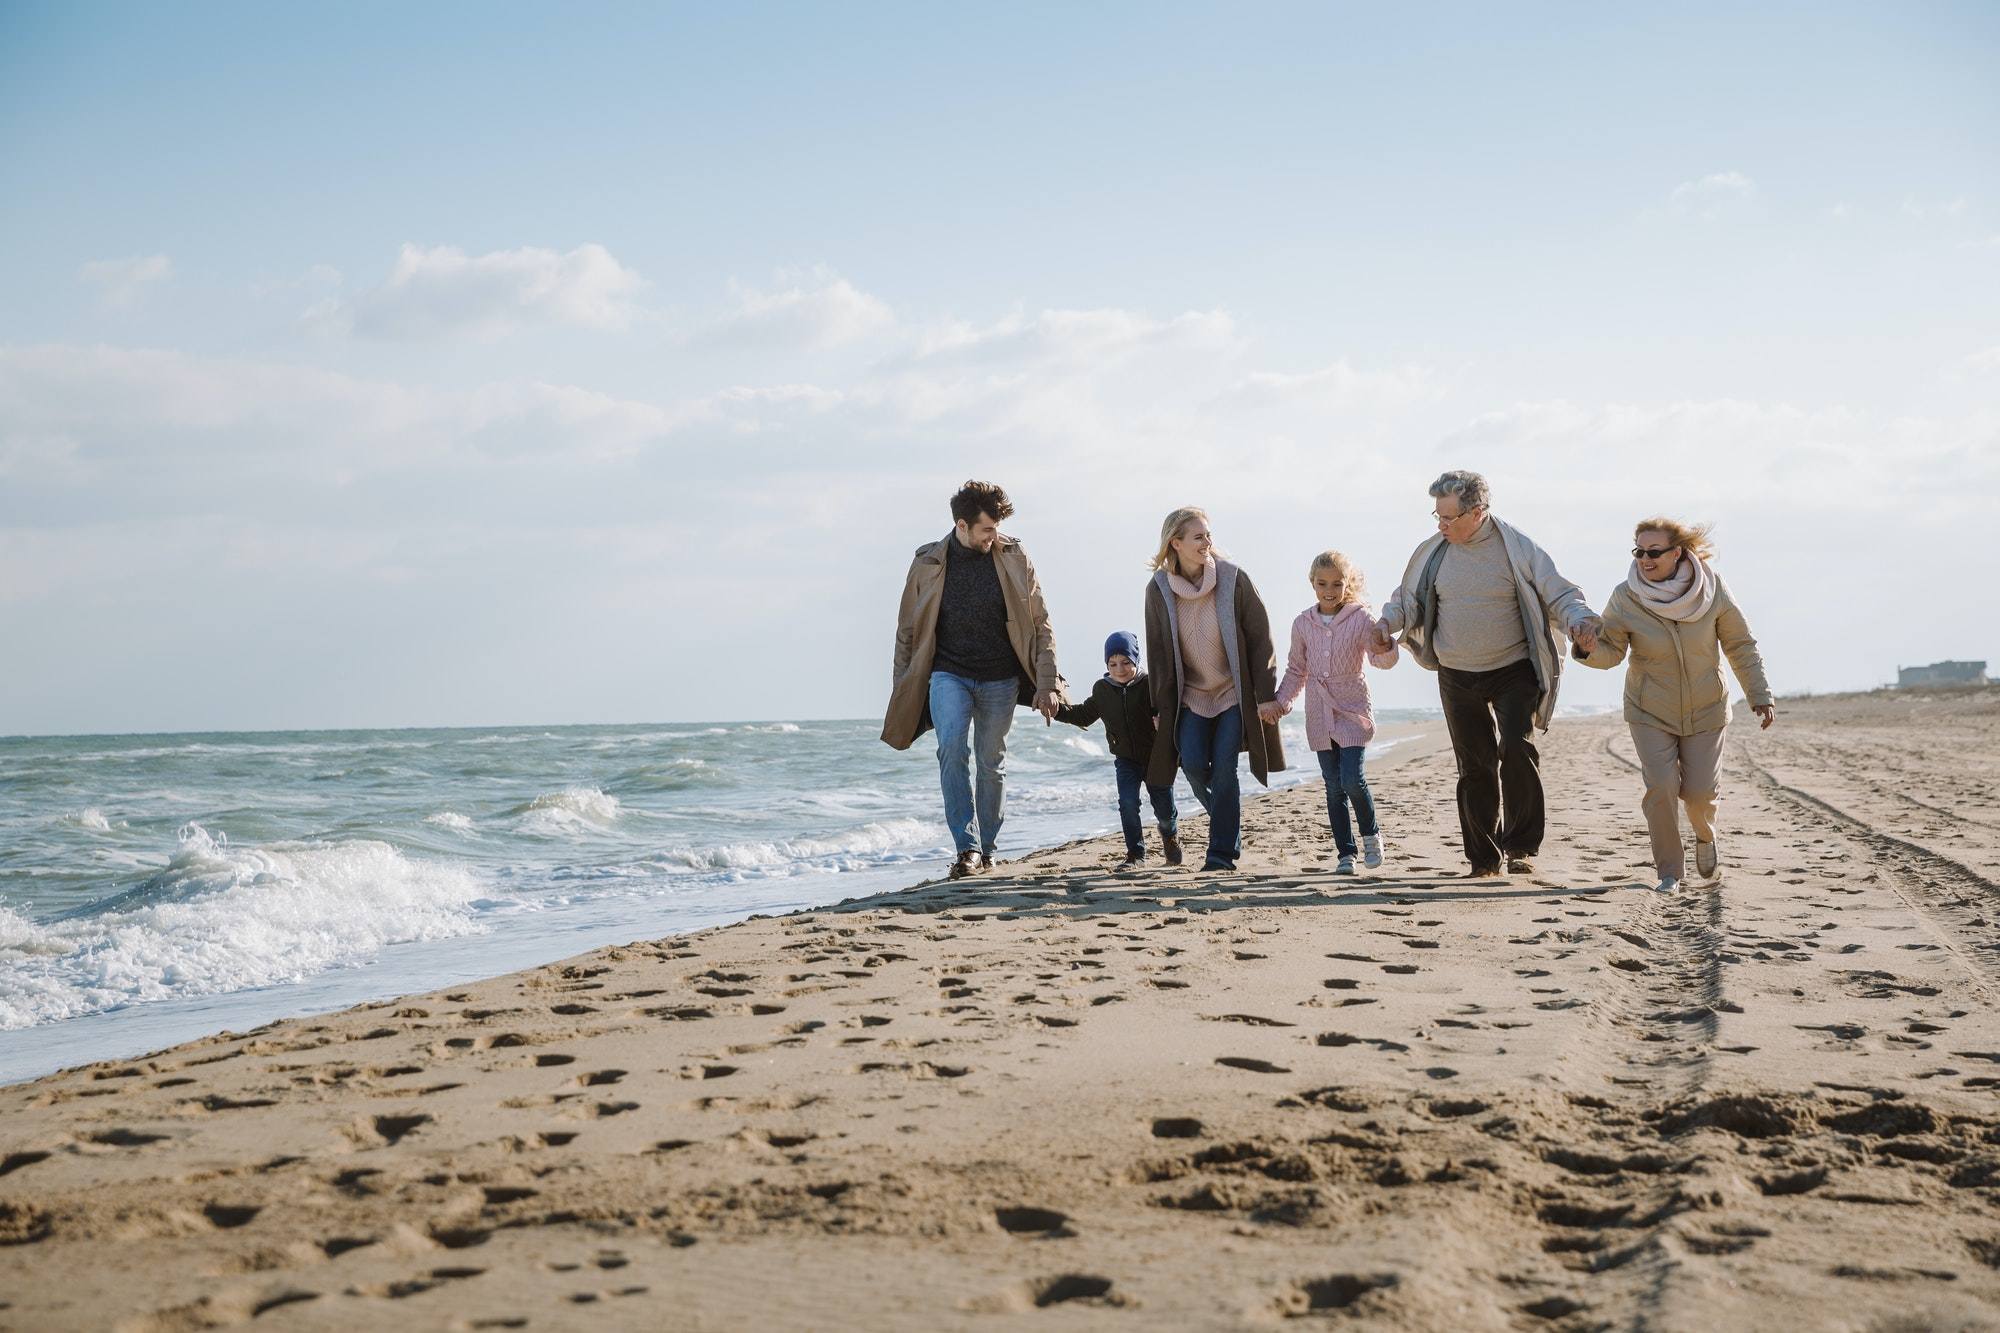 big multigenerational family walking together on beach at seaside